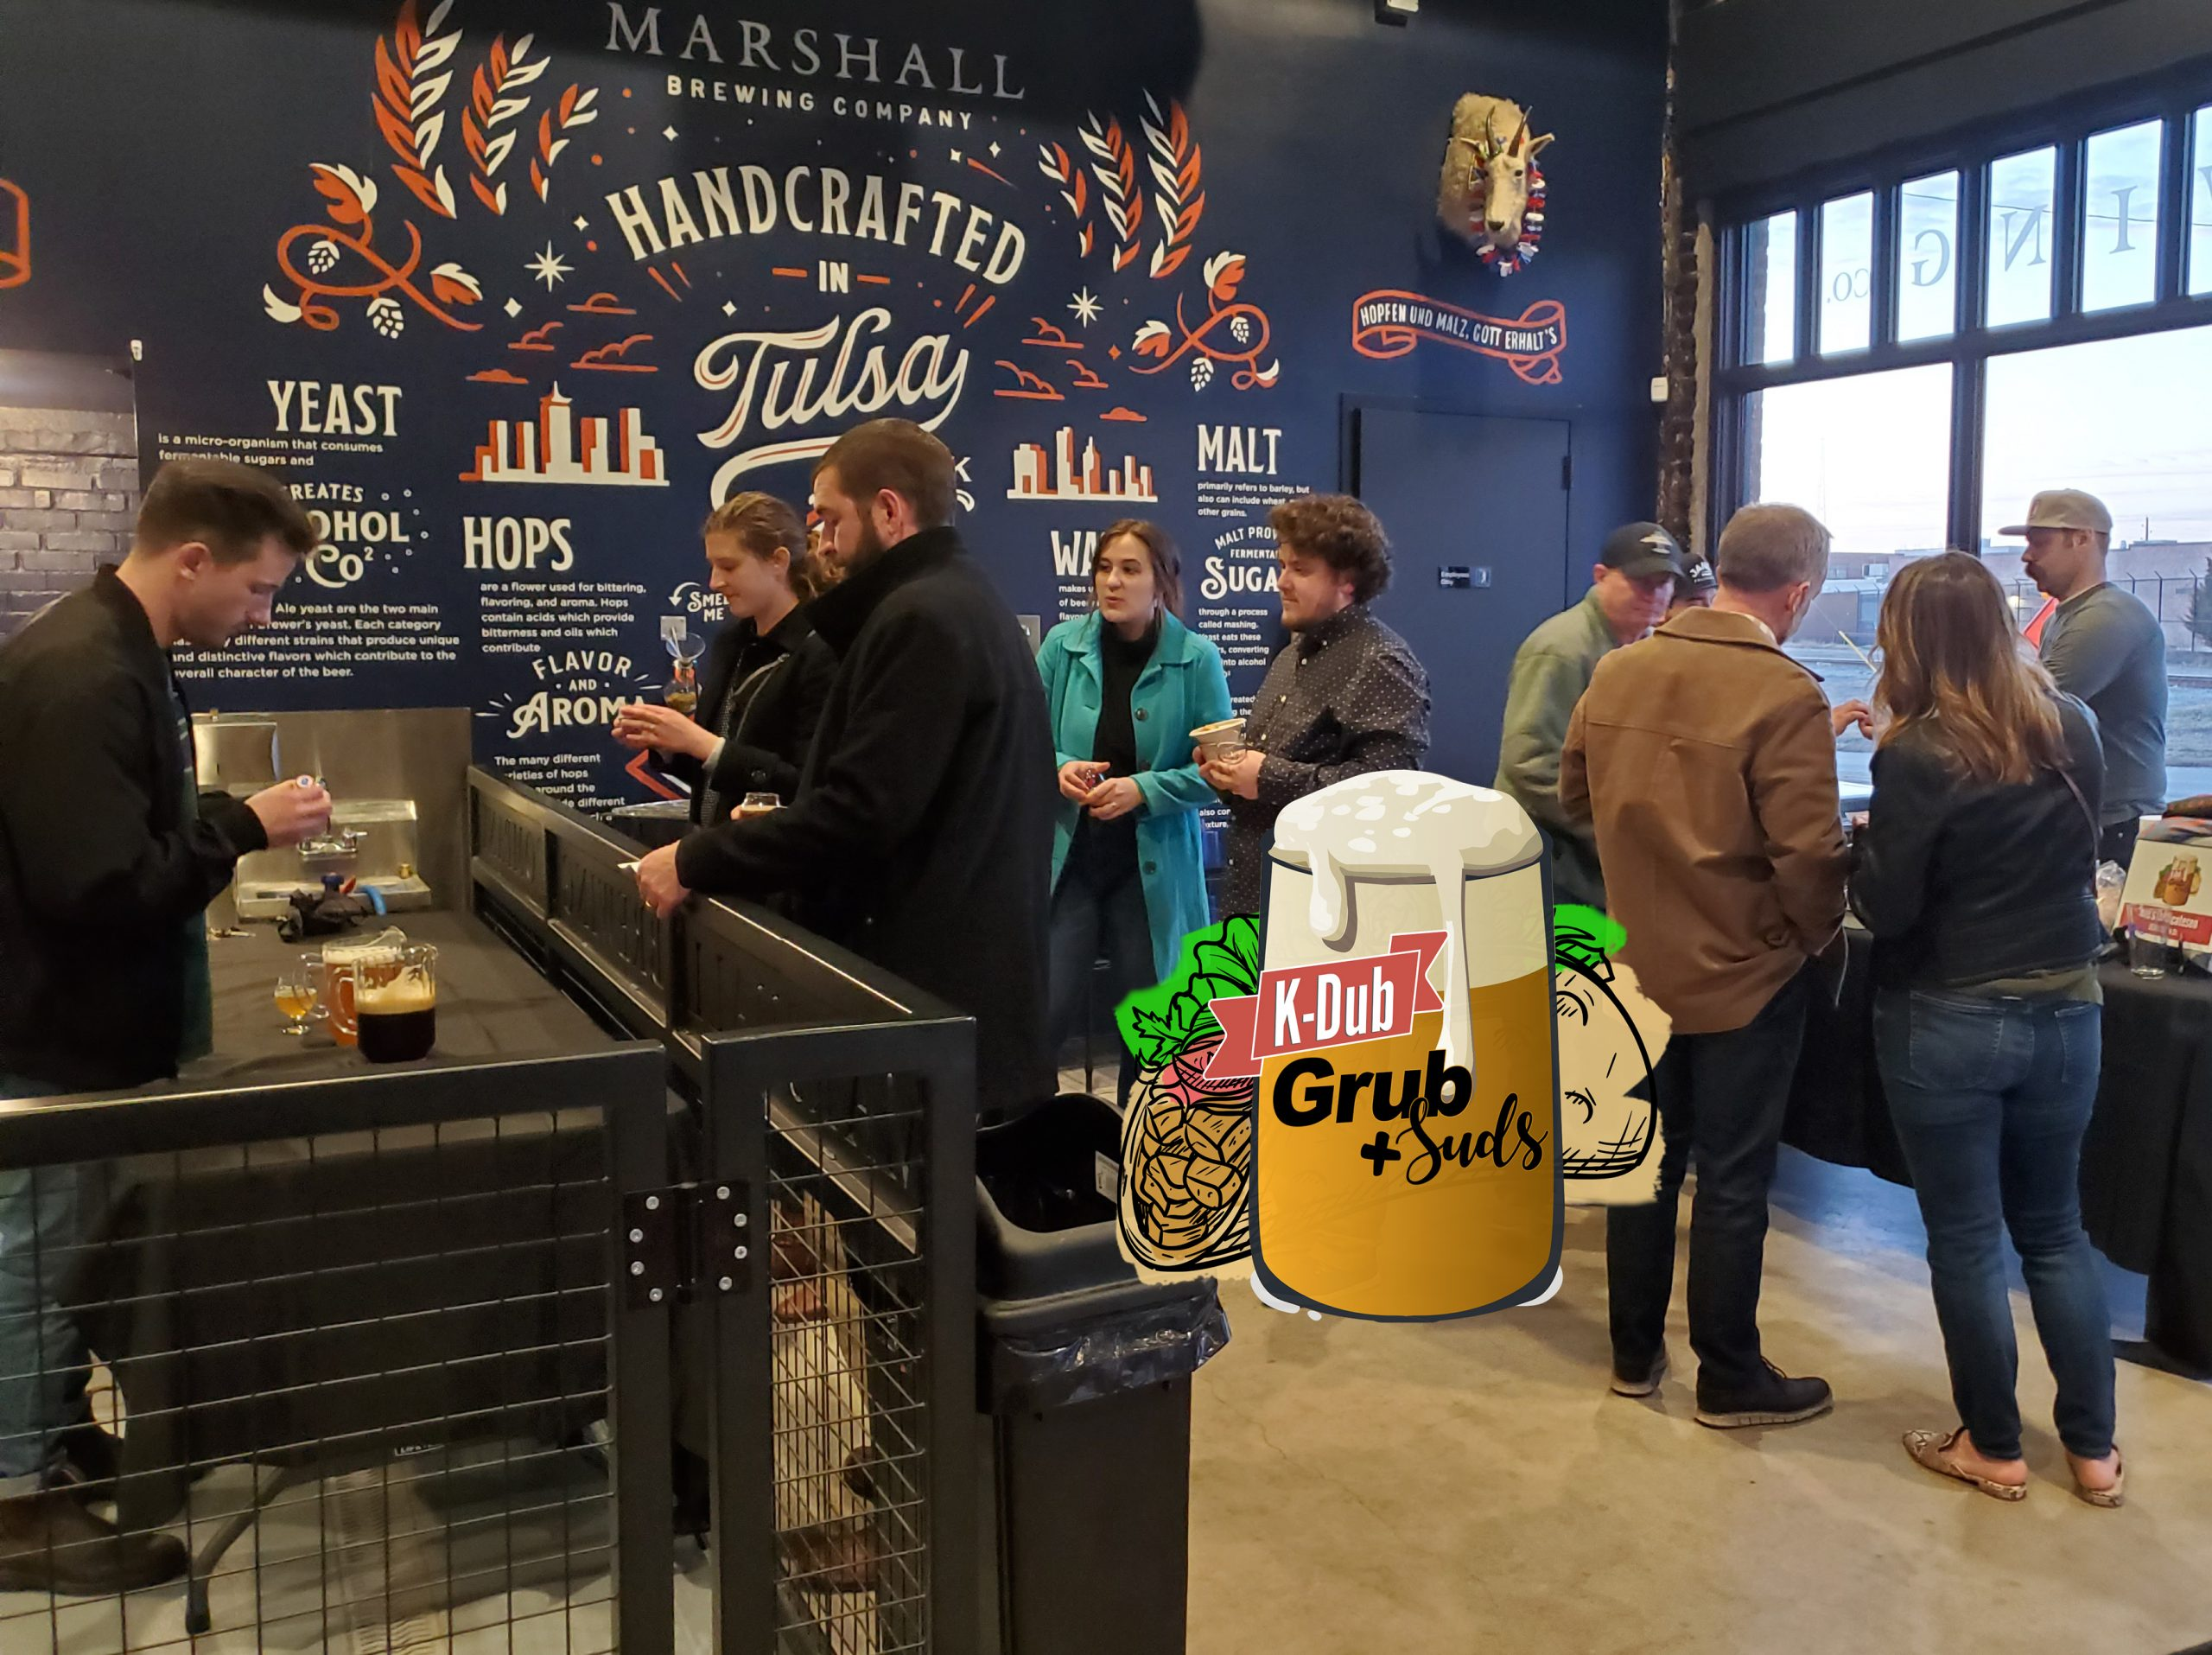 Grub, beer the stars of this foodie event